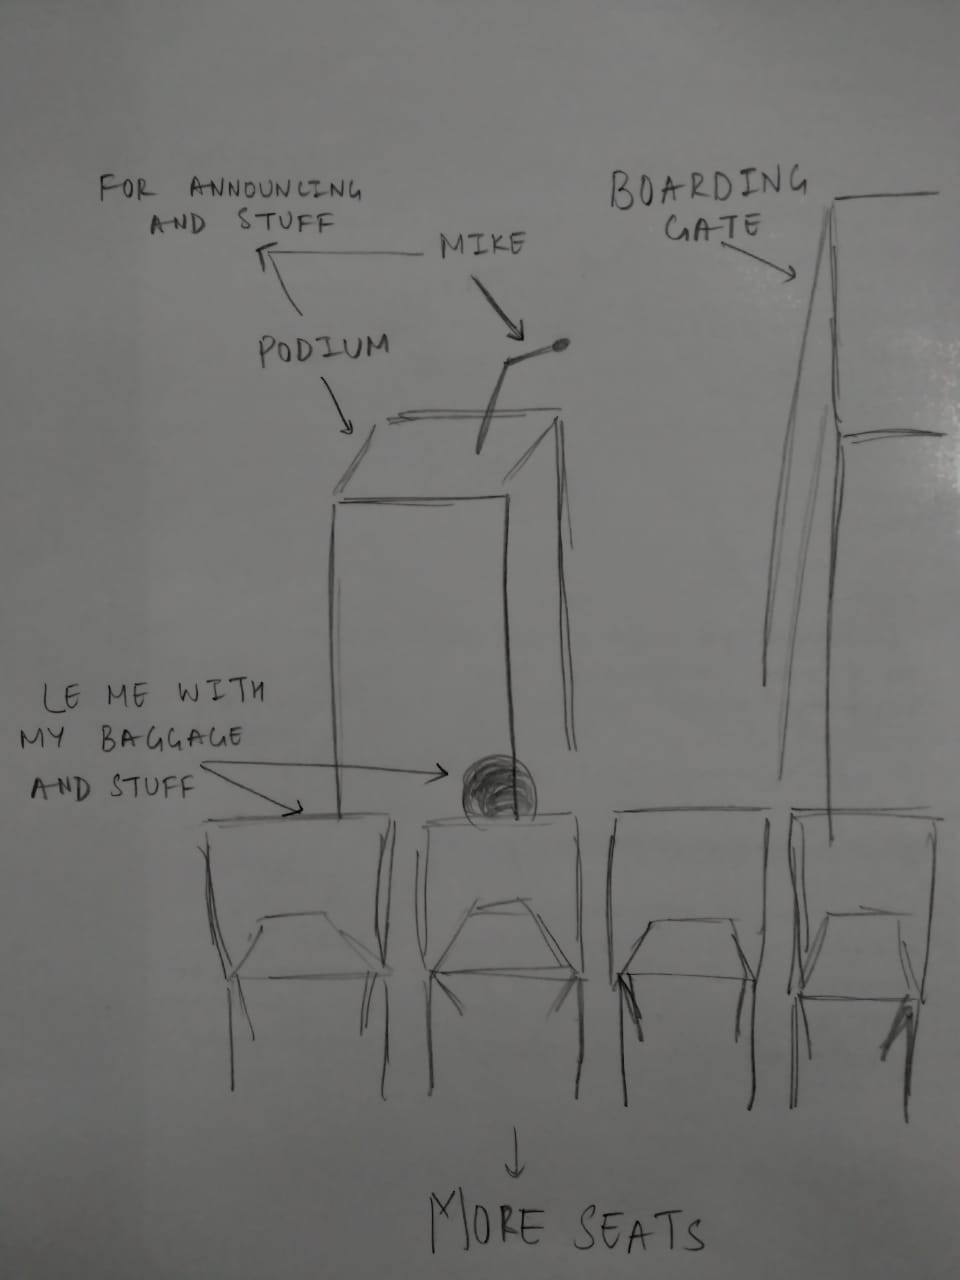 A drawing by the author showing the author sitting on the front most seat in front of the boarding gate at an airport.